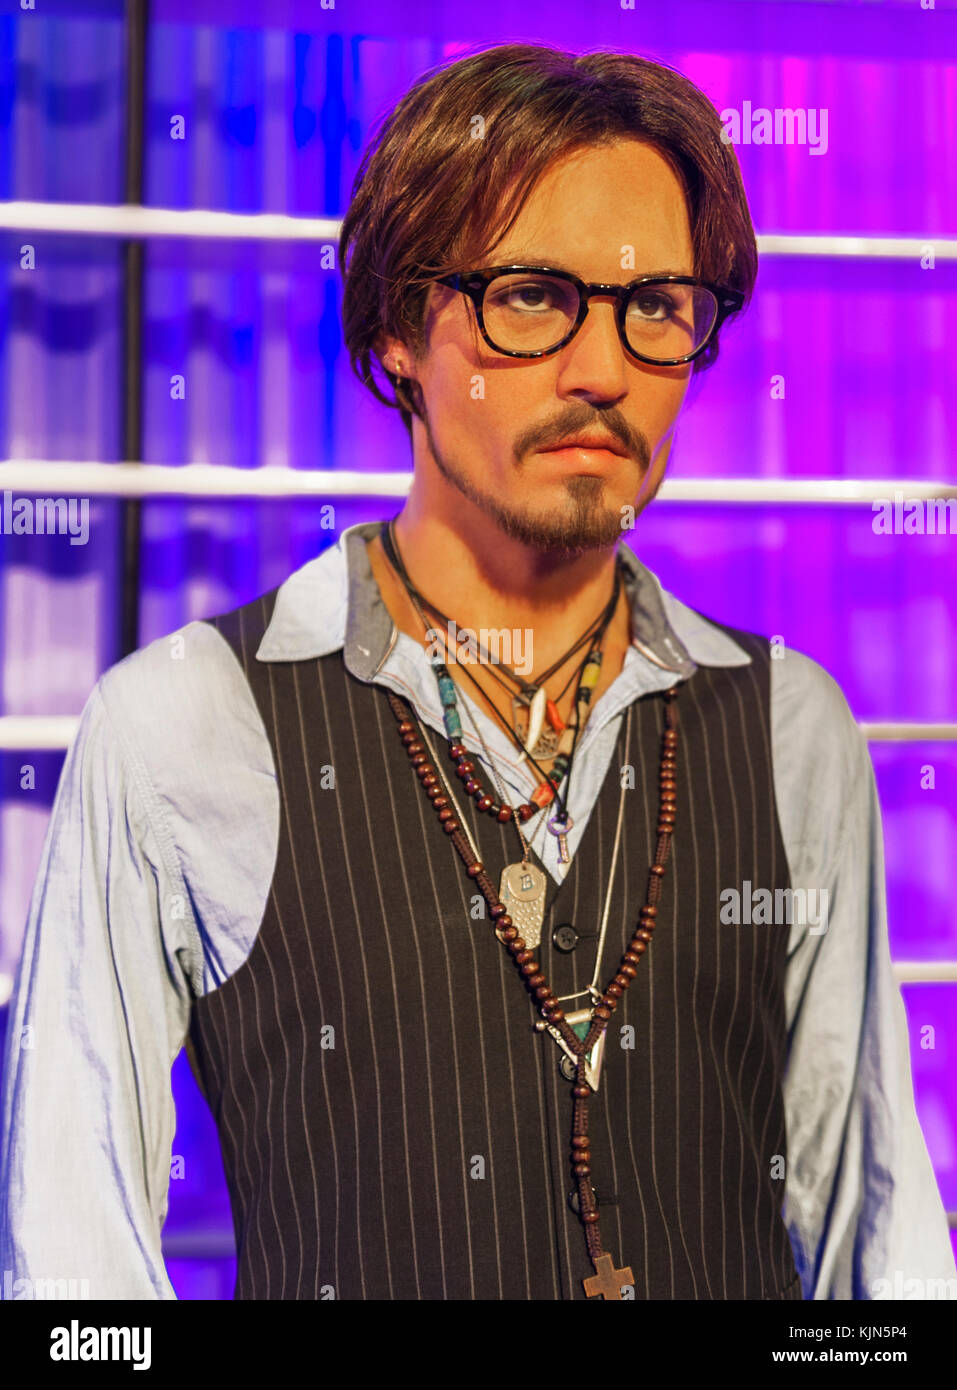 Berlin, Germany - March 2017:  Johnny Depp wax figure in Madame Tussaud's museum - Stock Image